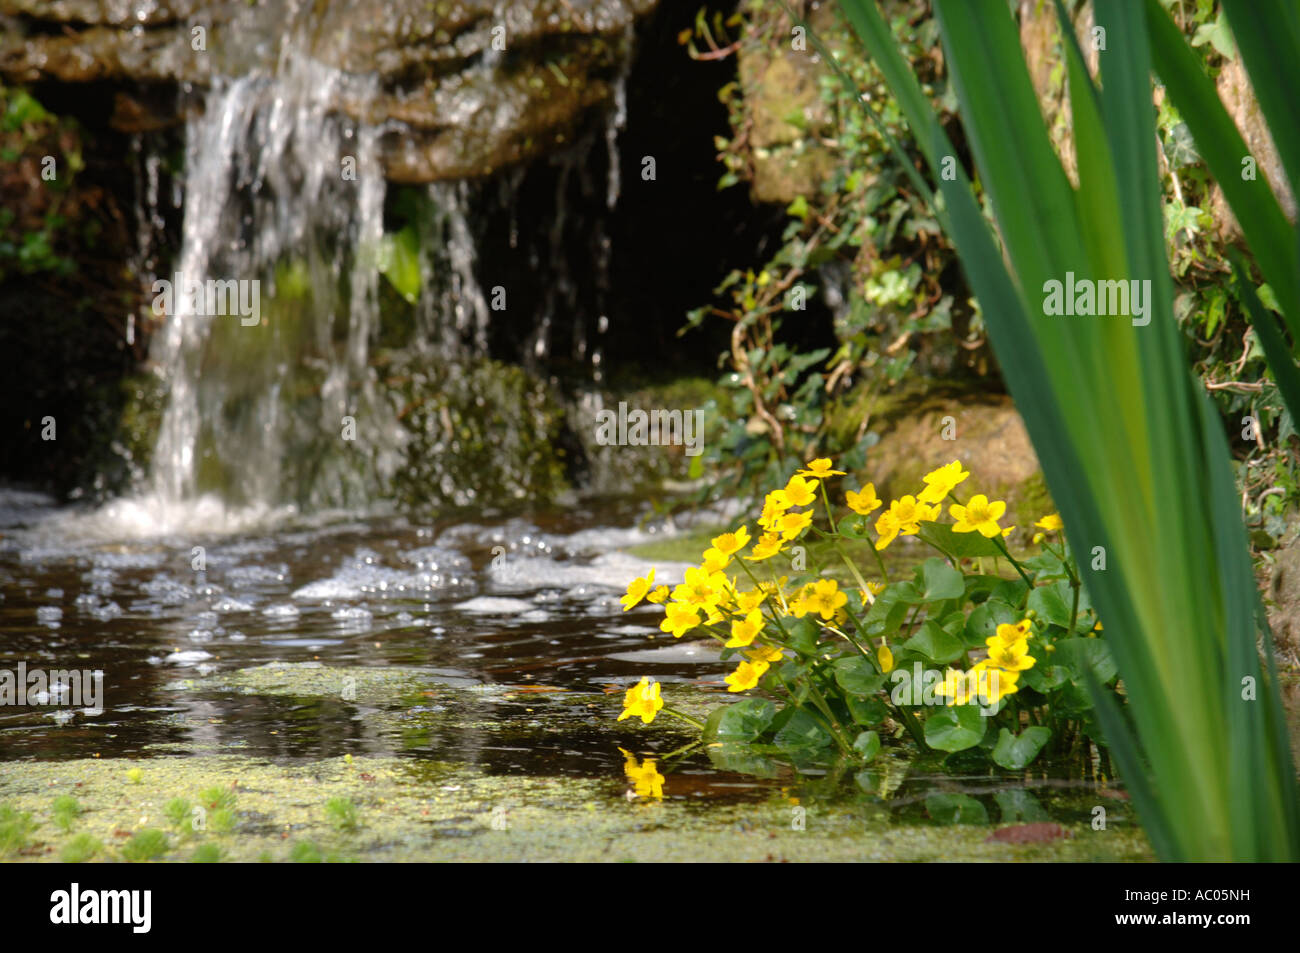 MARSH MARIGOLD OR KINGCUP BENEATH A WATERFALL AT DEWSTOW GARDENS AND GROTTOES NEAR CHEPSTOW SOUTH WALES UK - Stock Image